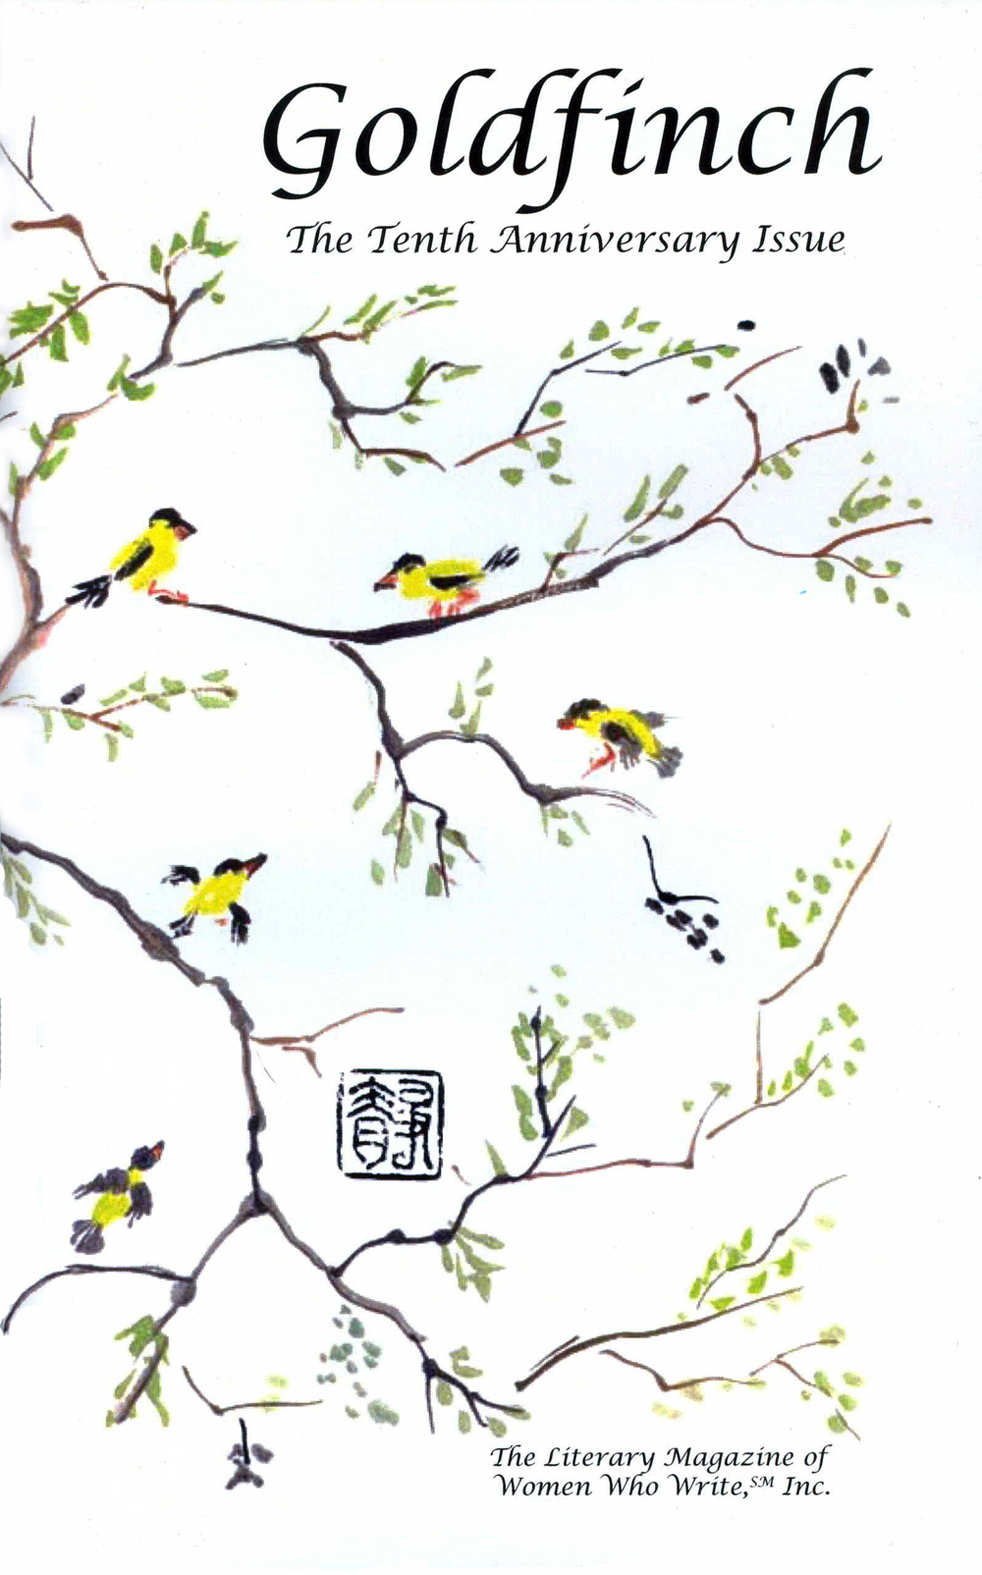 Goldfinch, Vol. 10, 2007